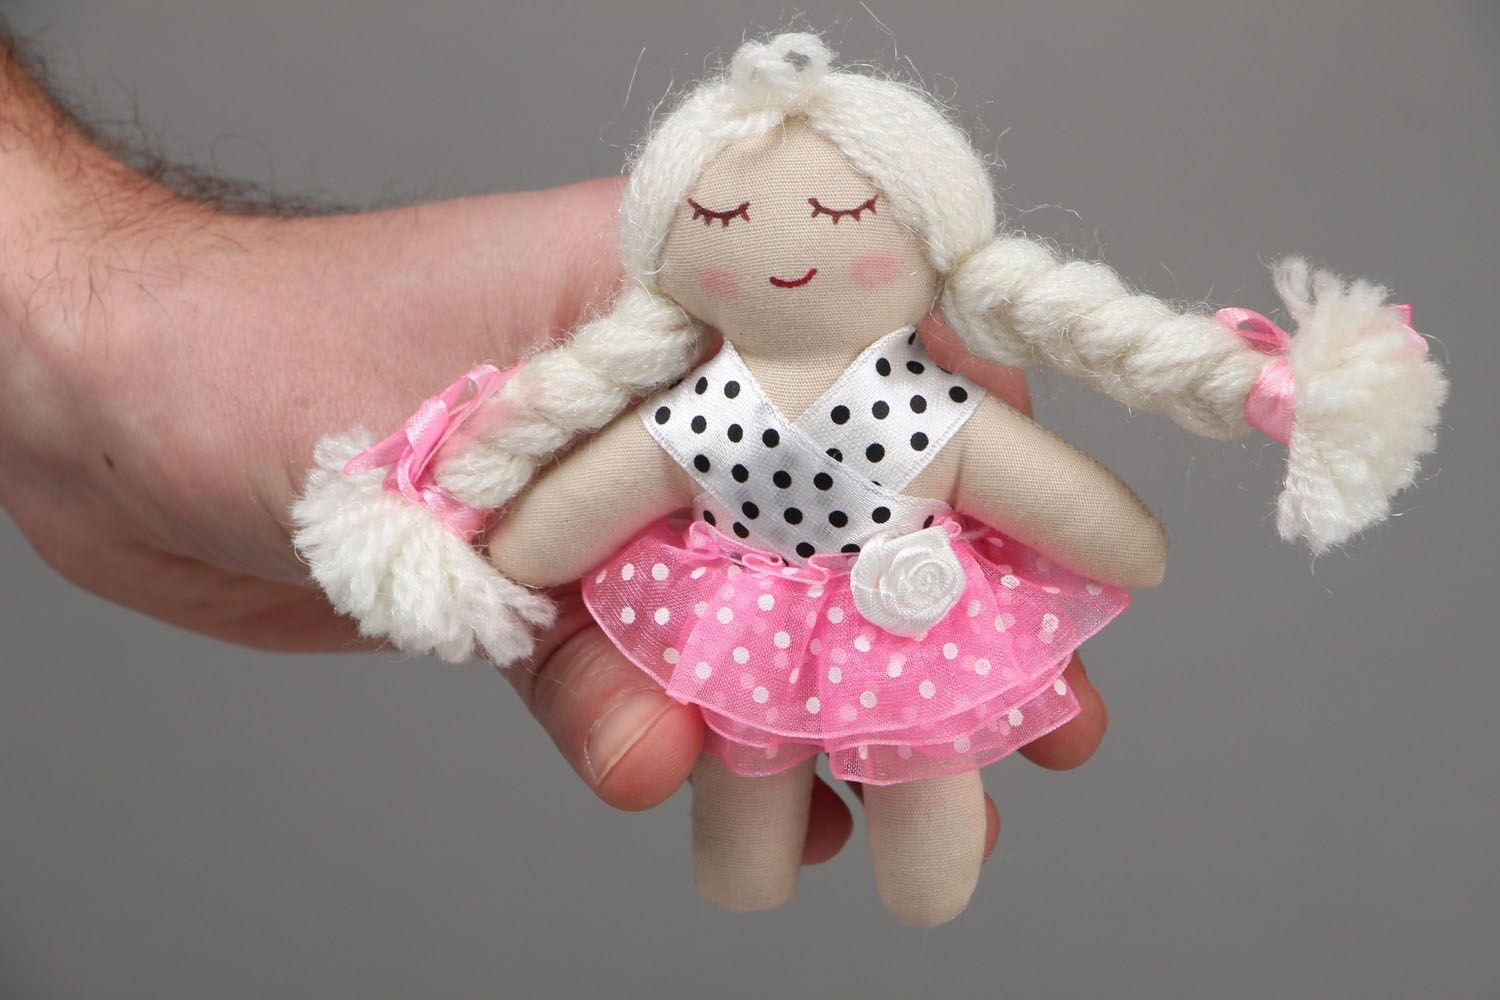 dolls Soft fabric doll - MADEheart.com